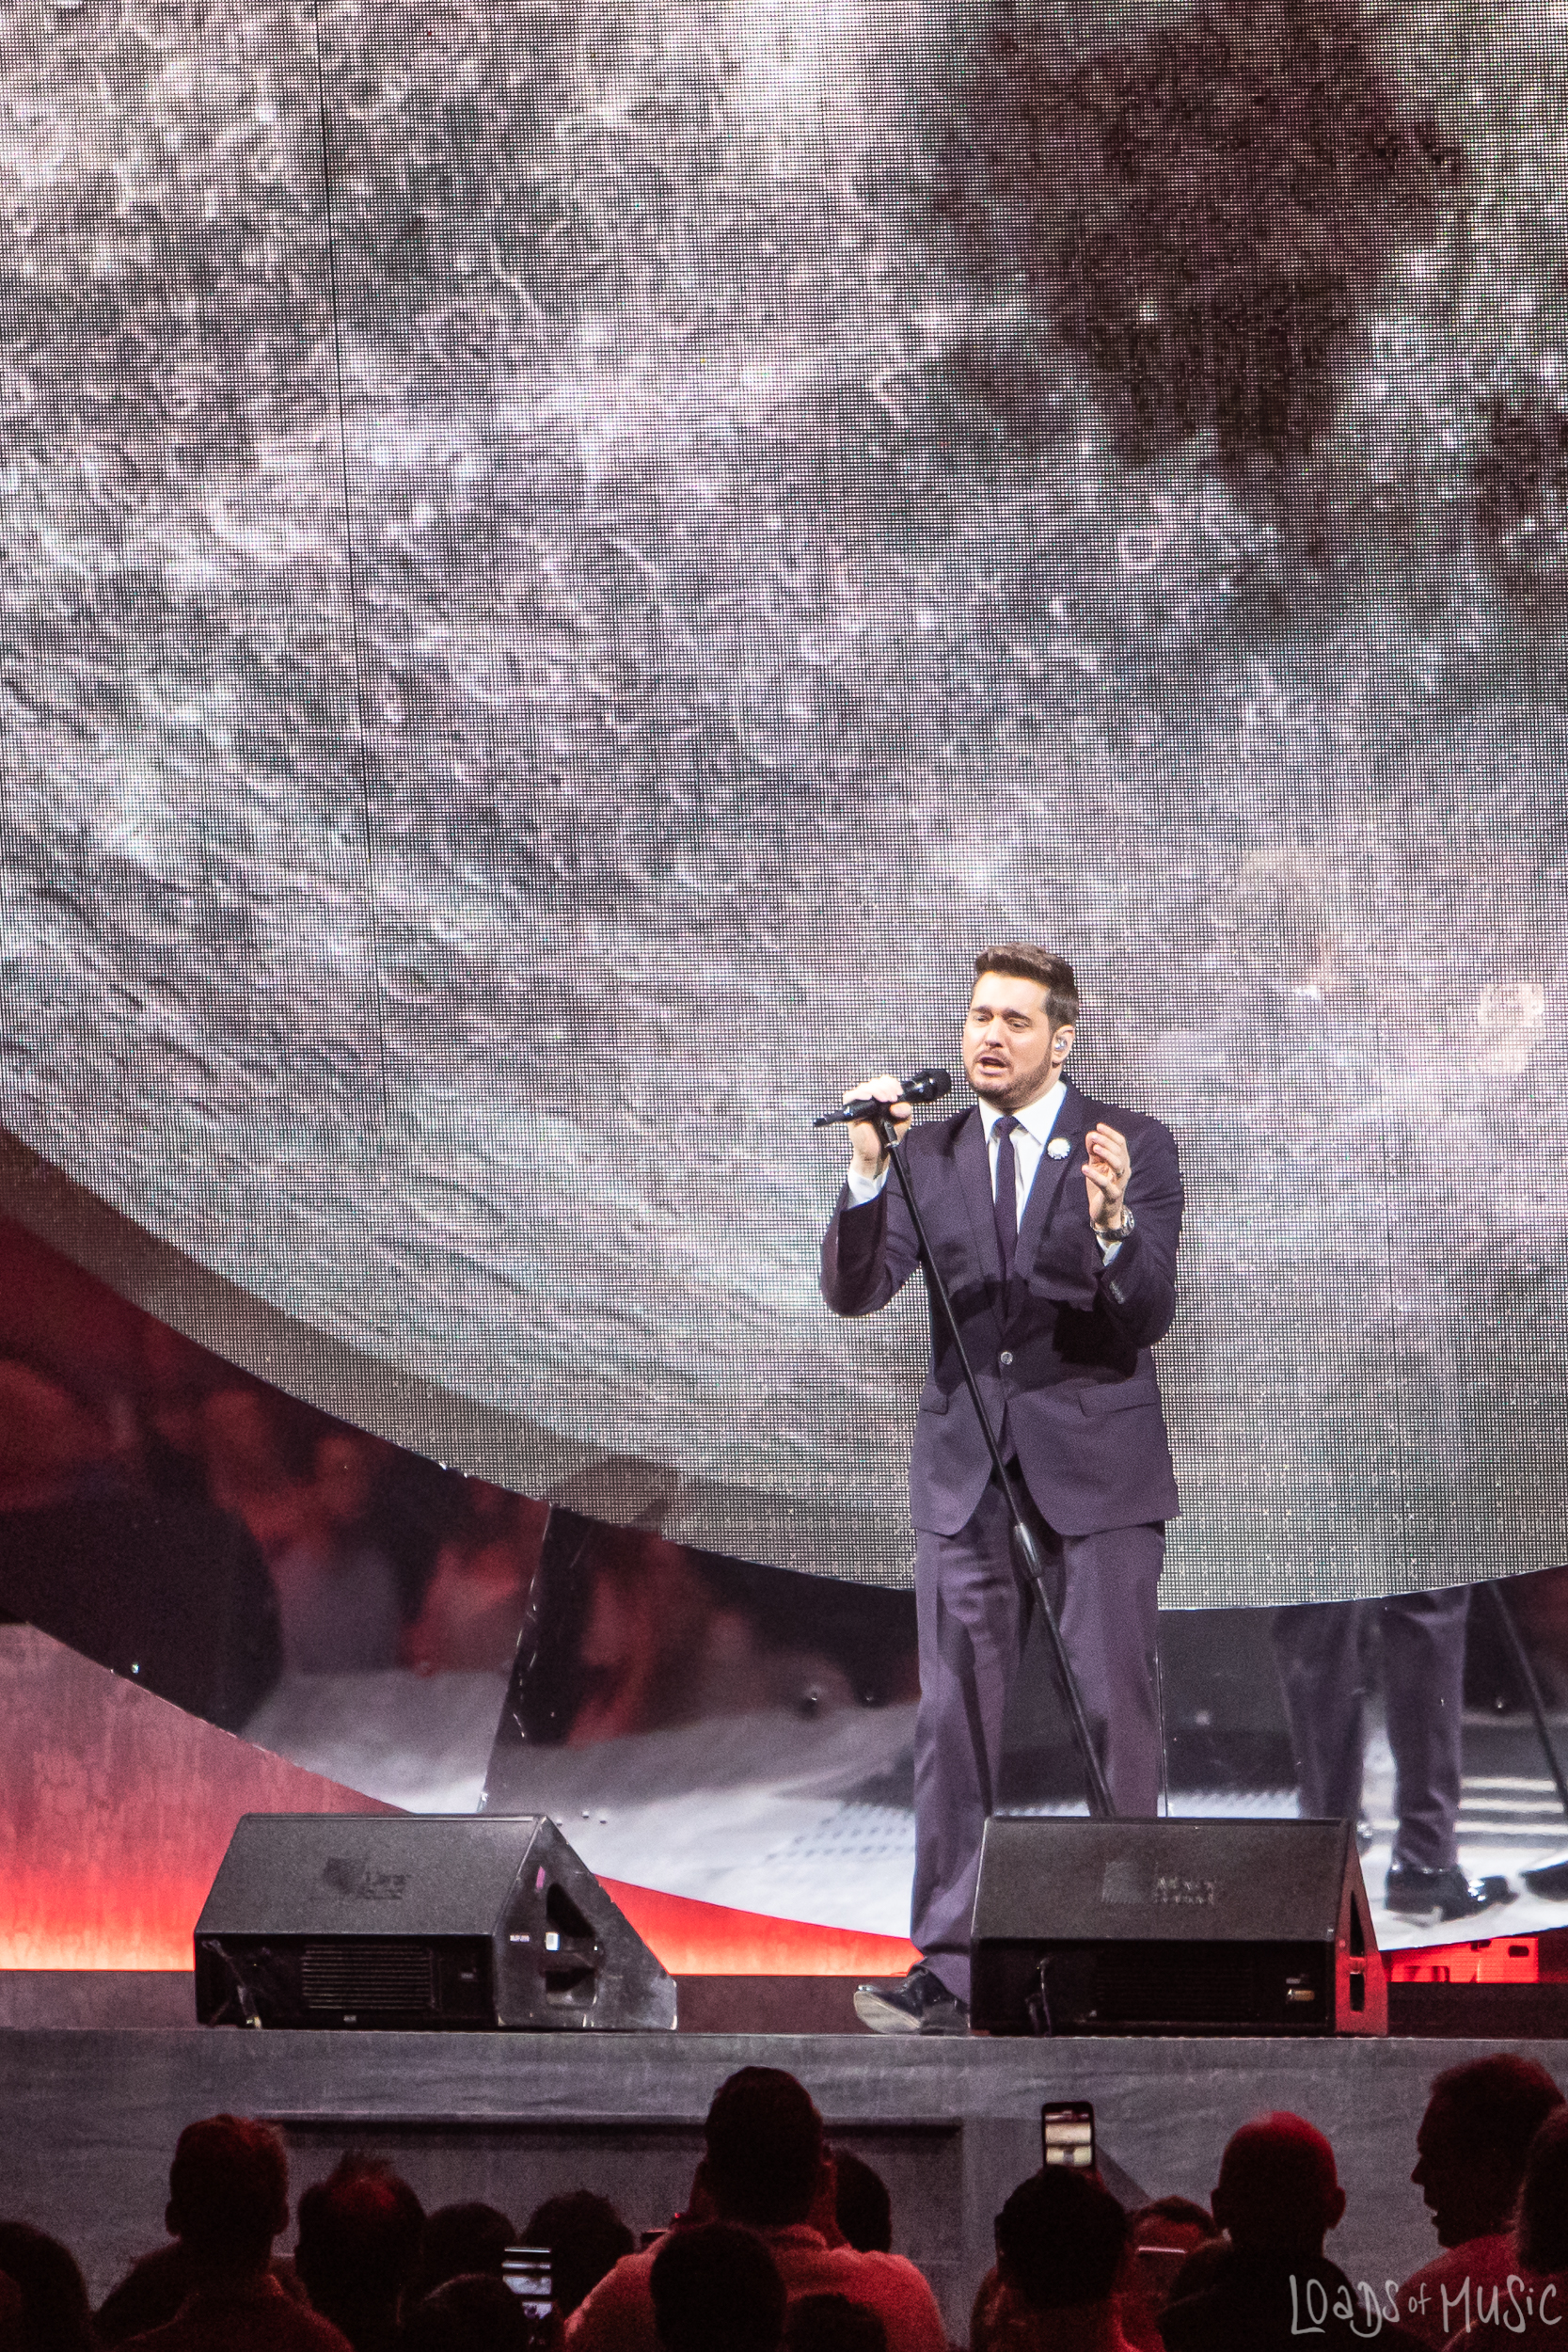 Michael_Buble_Hallenstadion_MB_12